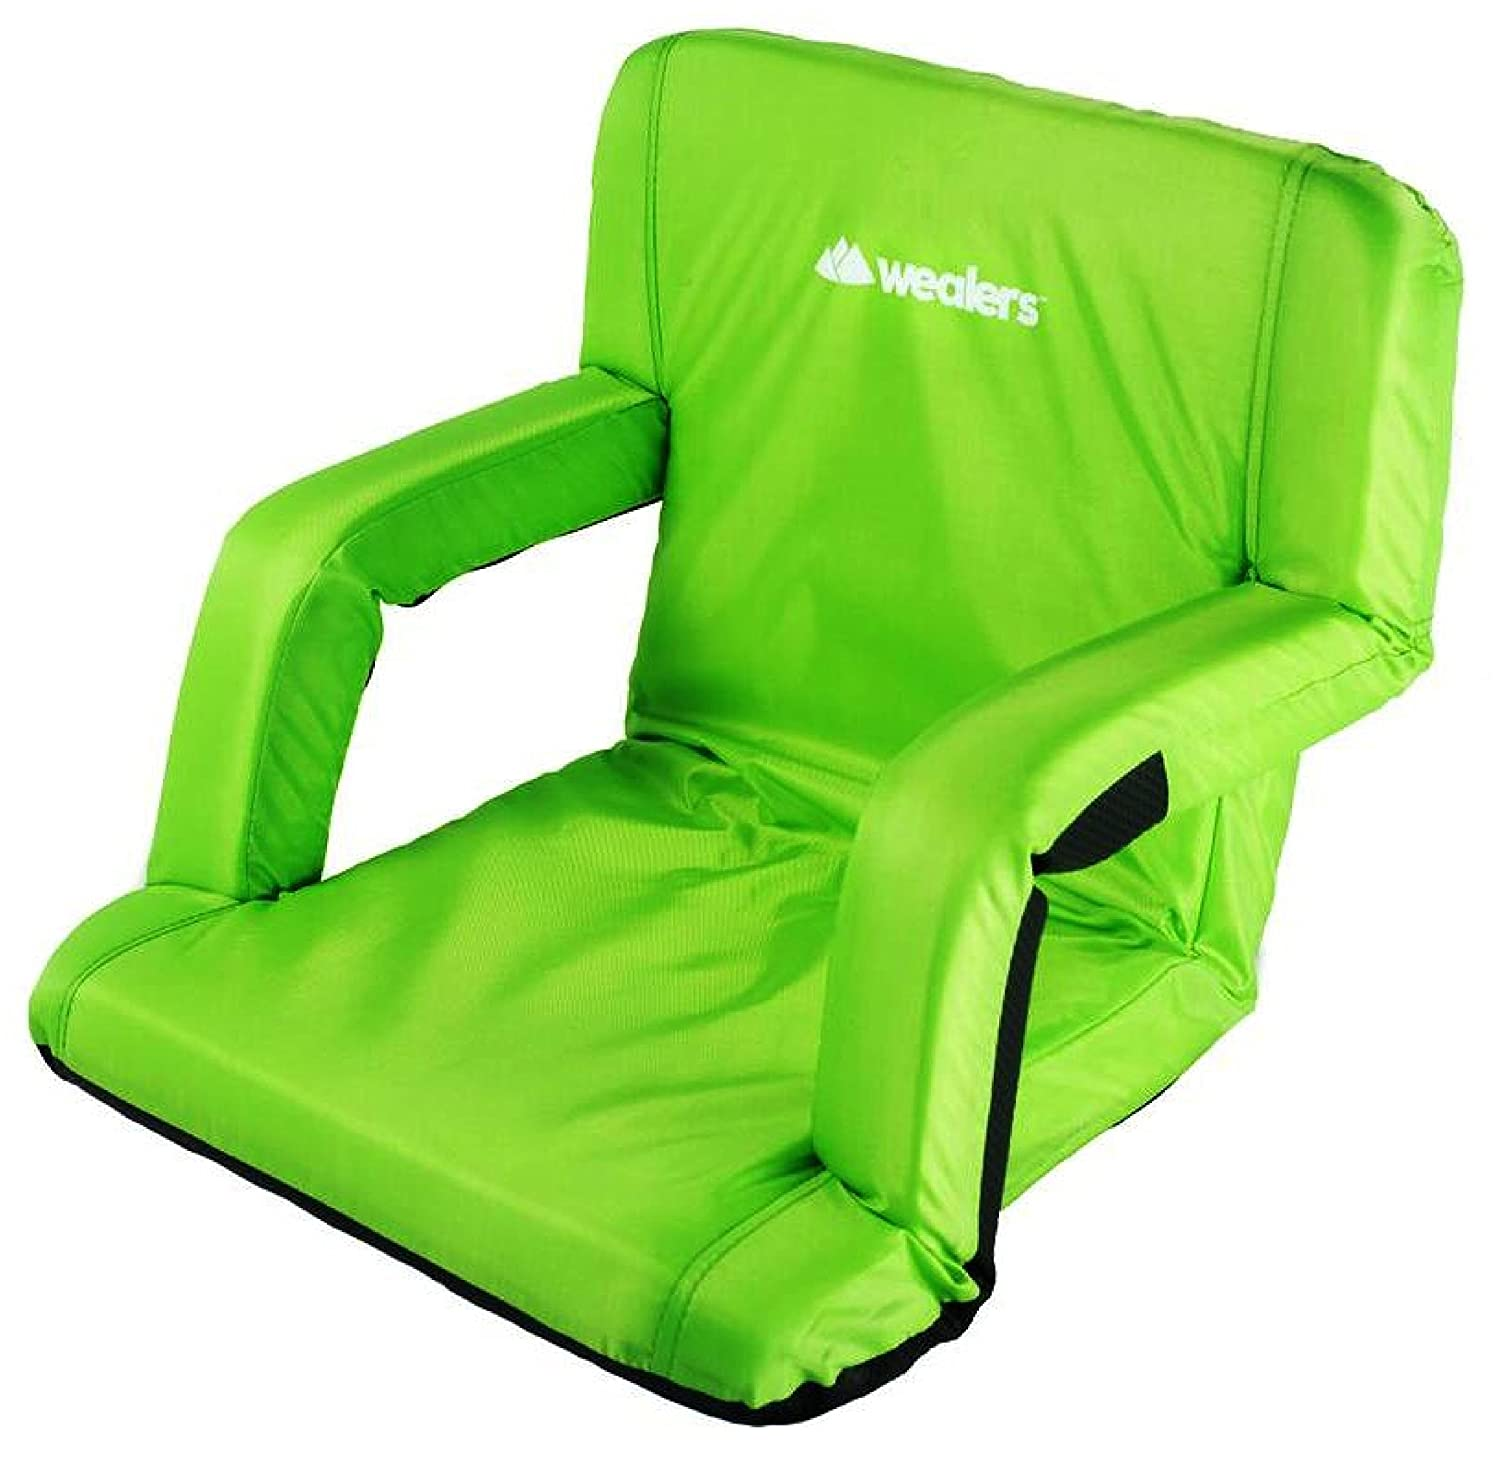 Amazon Wealers Portable Foldable Padded Recliner Seat with